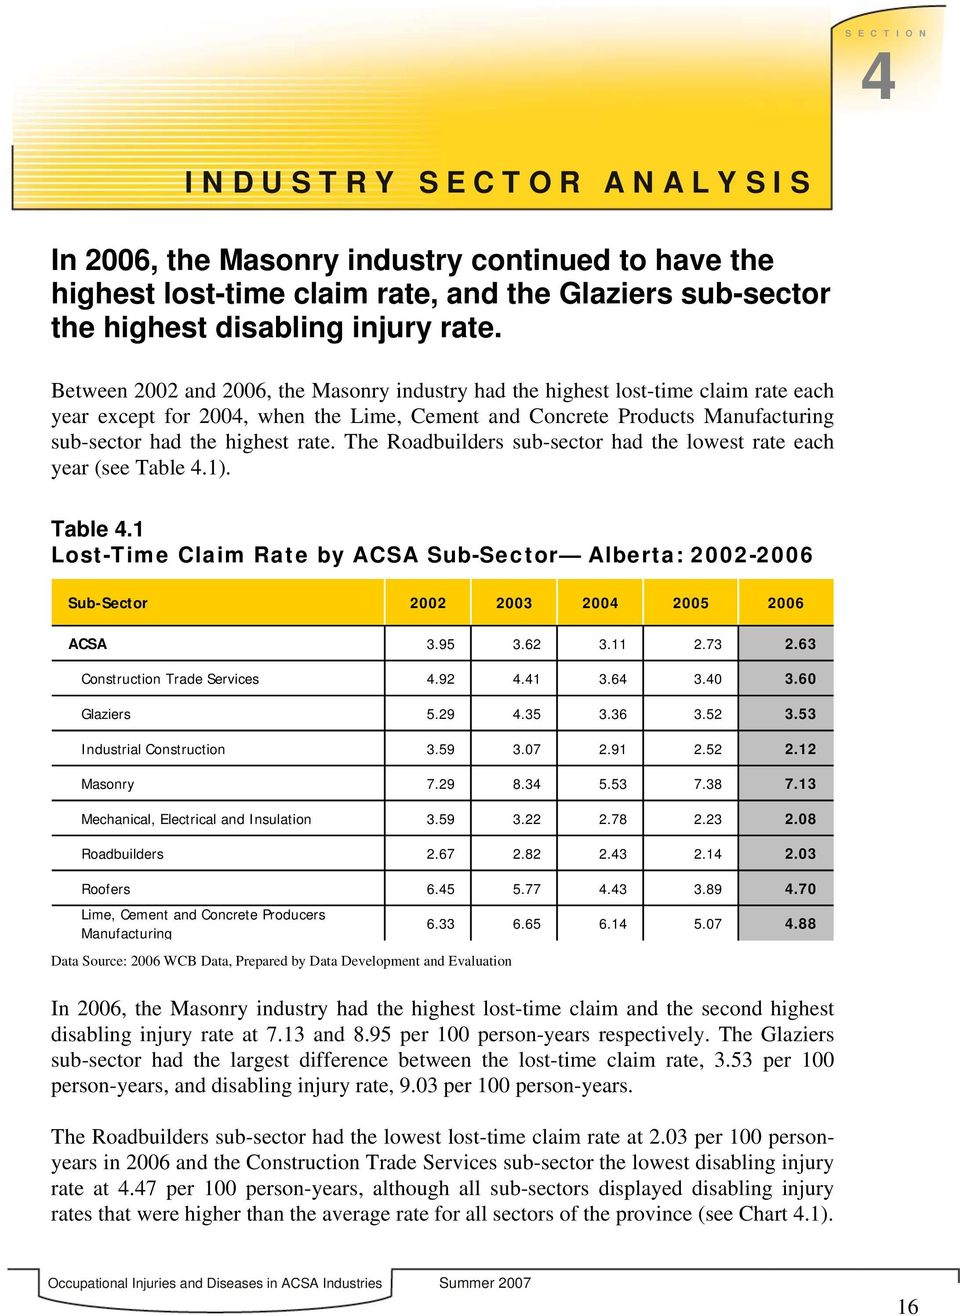 The Roadbuilders sub-sector had the lowest rate each year (see Table 4.1). Table 4.1 Lost-Time Claim Rate by ACSA Sub-Sector Alberta: 2002-2006 Sub-Sector 2002 2003 2004 2005 2006 ACSA 3.95 3.62 3.